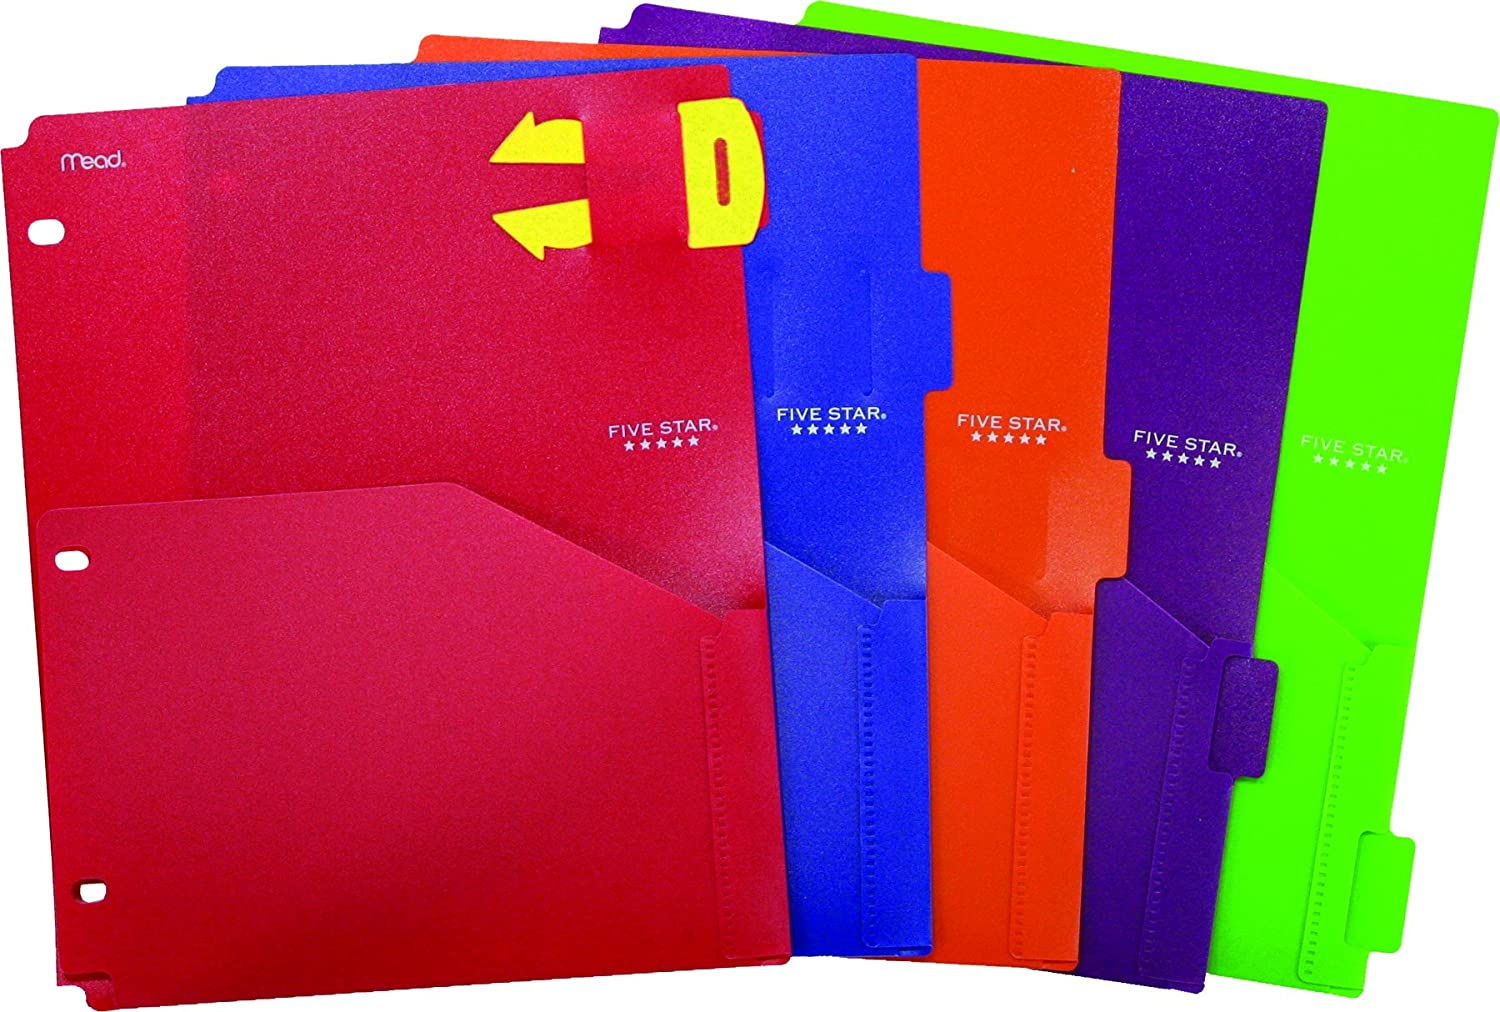 Five Star Poly Pocket Dividers with Pull Out Reminder Tabs, 11-1/2 x 9-3/4 Inches, Pack of 5, Assorted Colors (20058)